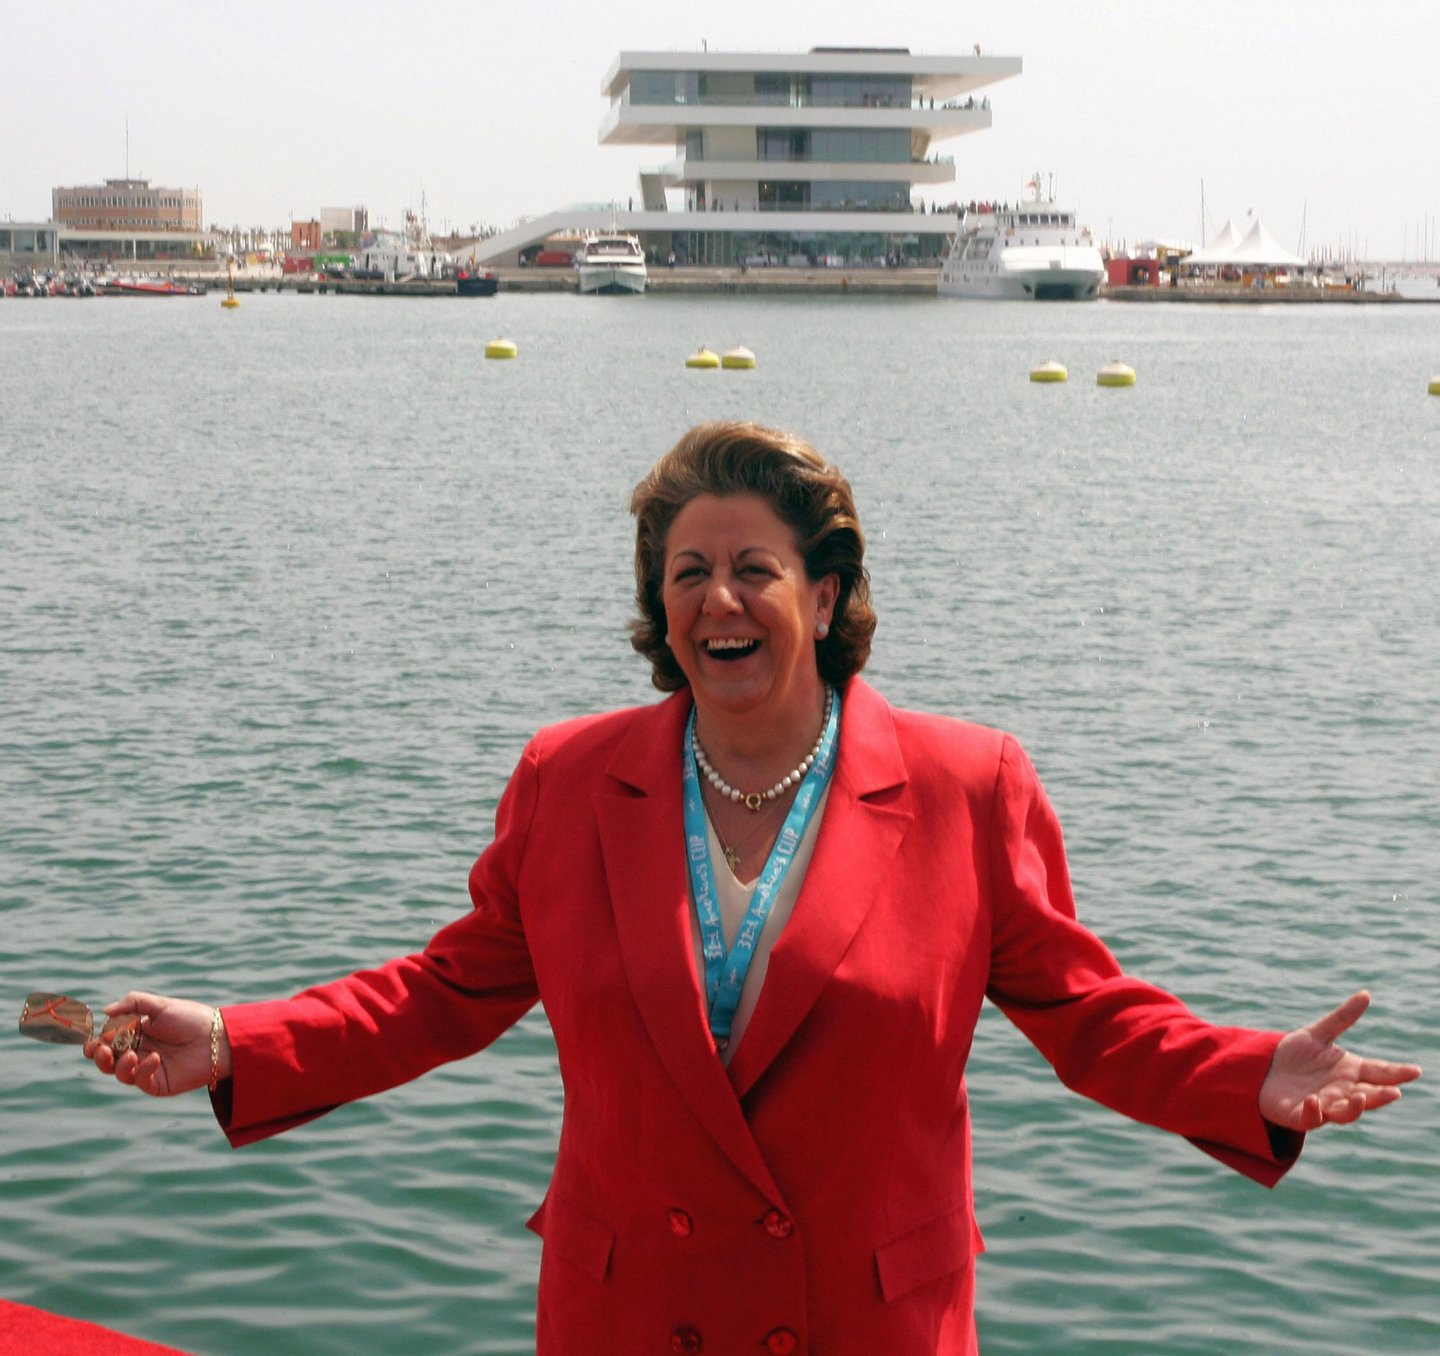 VALENCIA, SPAIN: Valencia's Mayor Rita Barbera poses at the America's Cup port in Valencia, 11 March 2007. The eleven teams who hope to take on the holders Alinghi in Valencia for the prestigious America's Cup are out on the open water training intensely just one month before the knock-out stages. AFP PHOTO/JOSE JORDAN (Photo credit should read JOSE JORDAN/AFP/Getty Images)